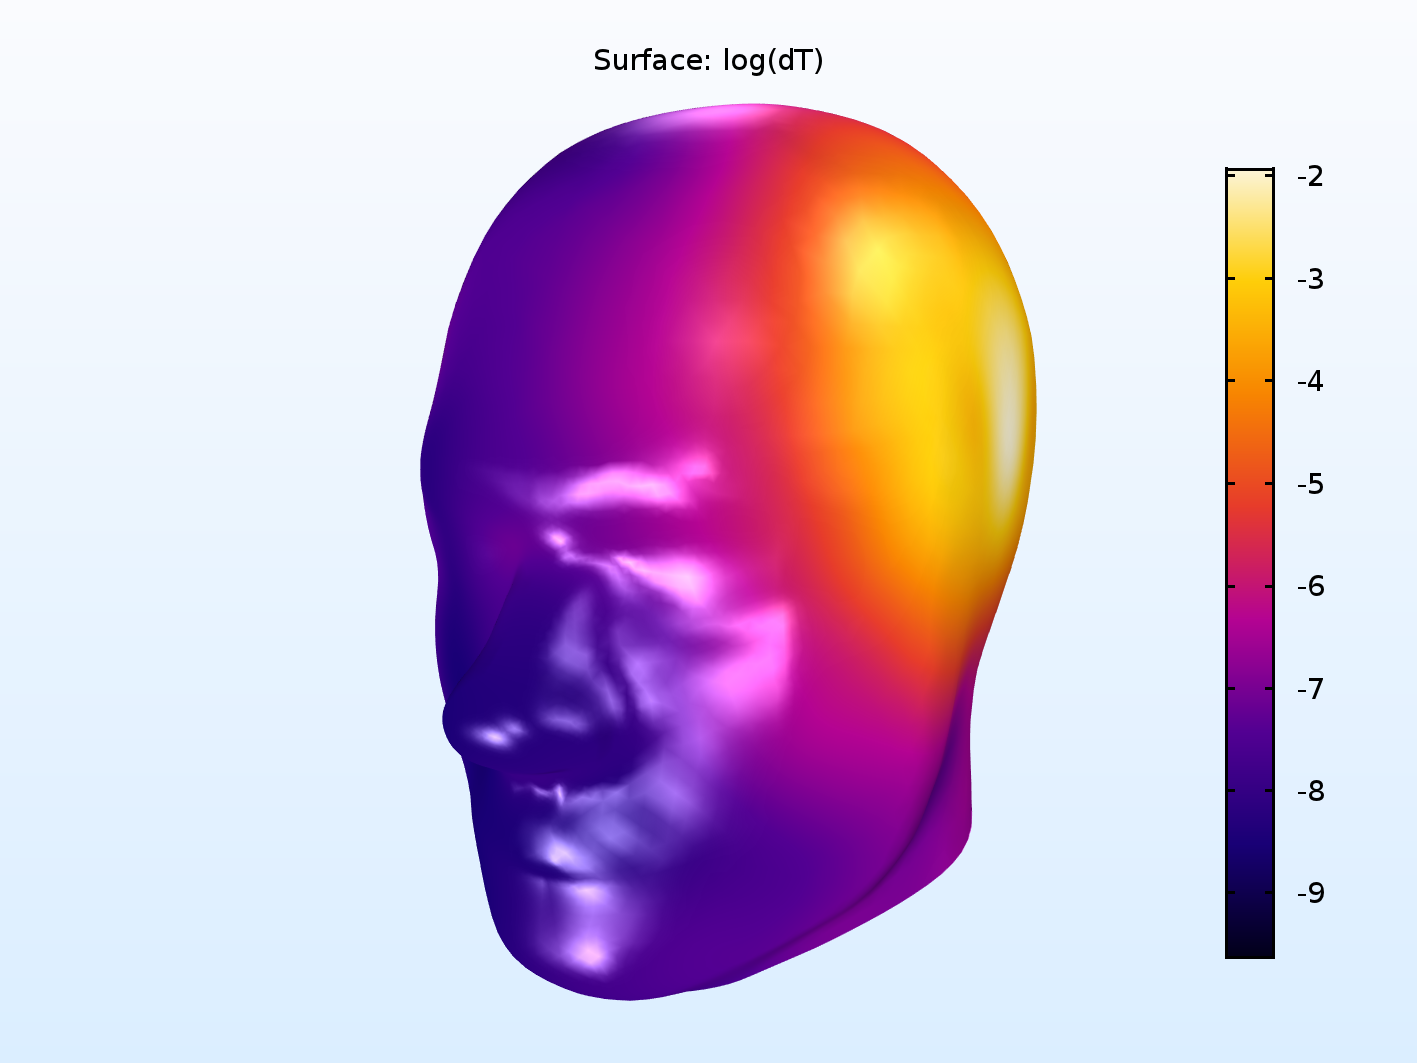 A logarithm of the change in temperature in a phantom head subjected to a cell phone's microwave radiation from the Absorbed Radiation (SAR) in the Human Brain tutorial model, visualized using the new Heat Camera color table option.